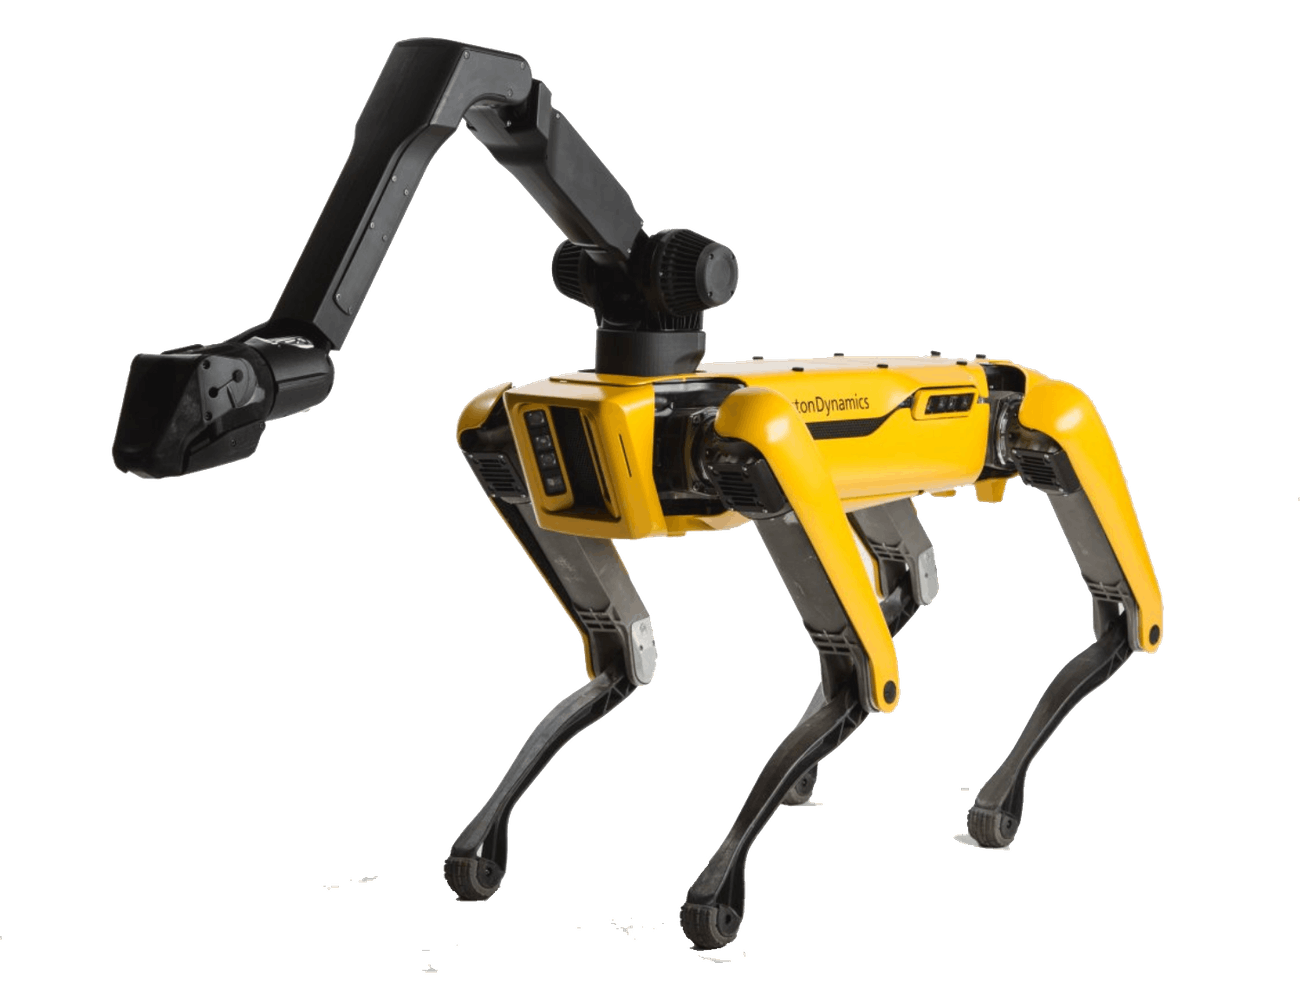 SpotMIni by Boston Dynamics